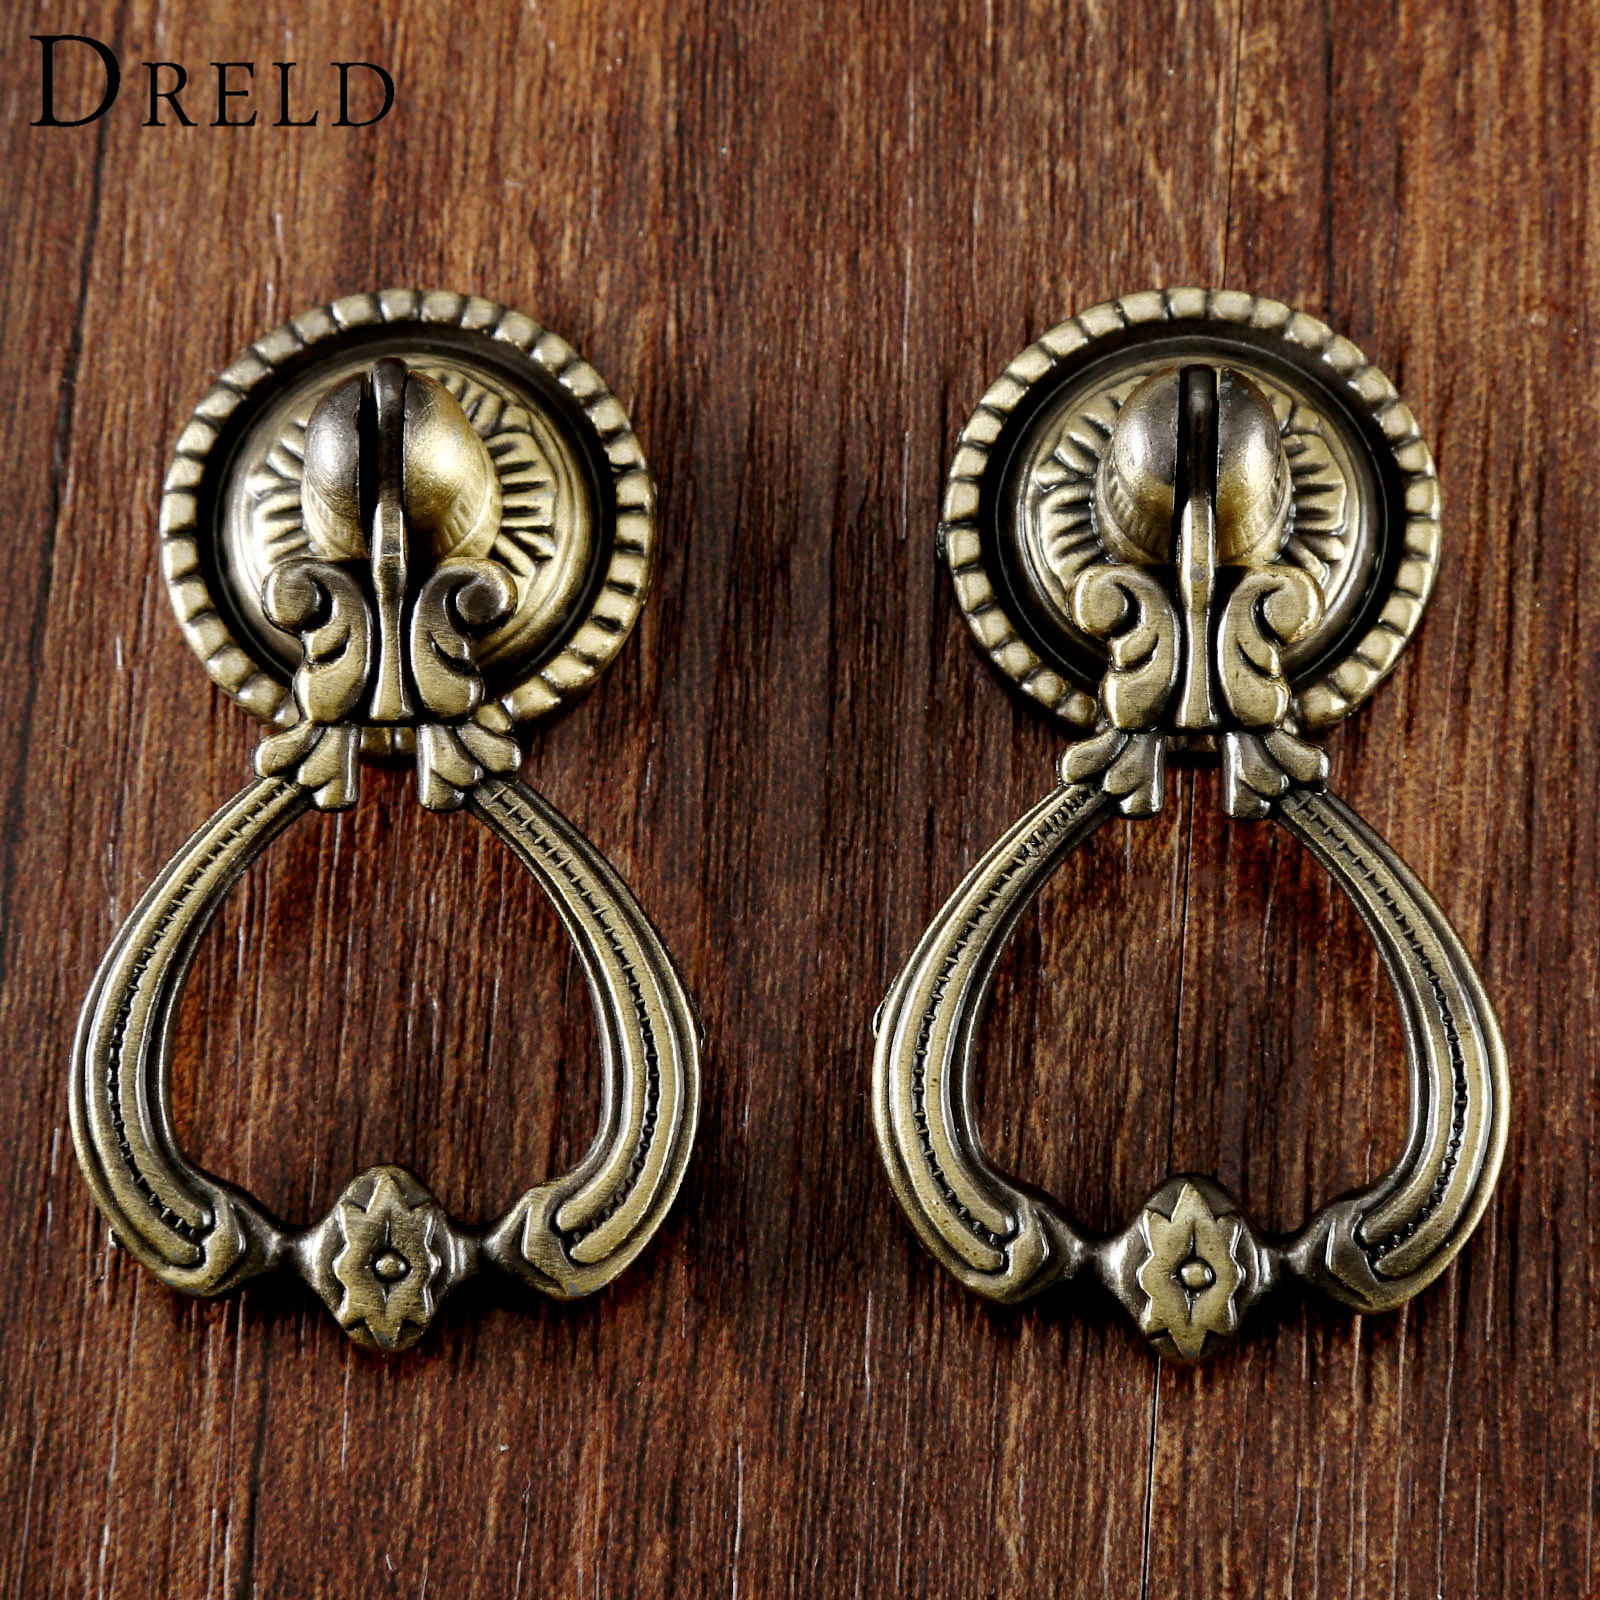 DRELD 2Pcs Antique Brass Furniture Handles Vintage Cabinet Knobs and Handles Door Closet Cabinet Drawer Pull Handle for Kitchen 1 pair 96mm vintage furniture cupboard wardrobe handles and knobs antique bronze alloy kitchen cabinet door drawer pull handle